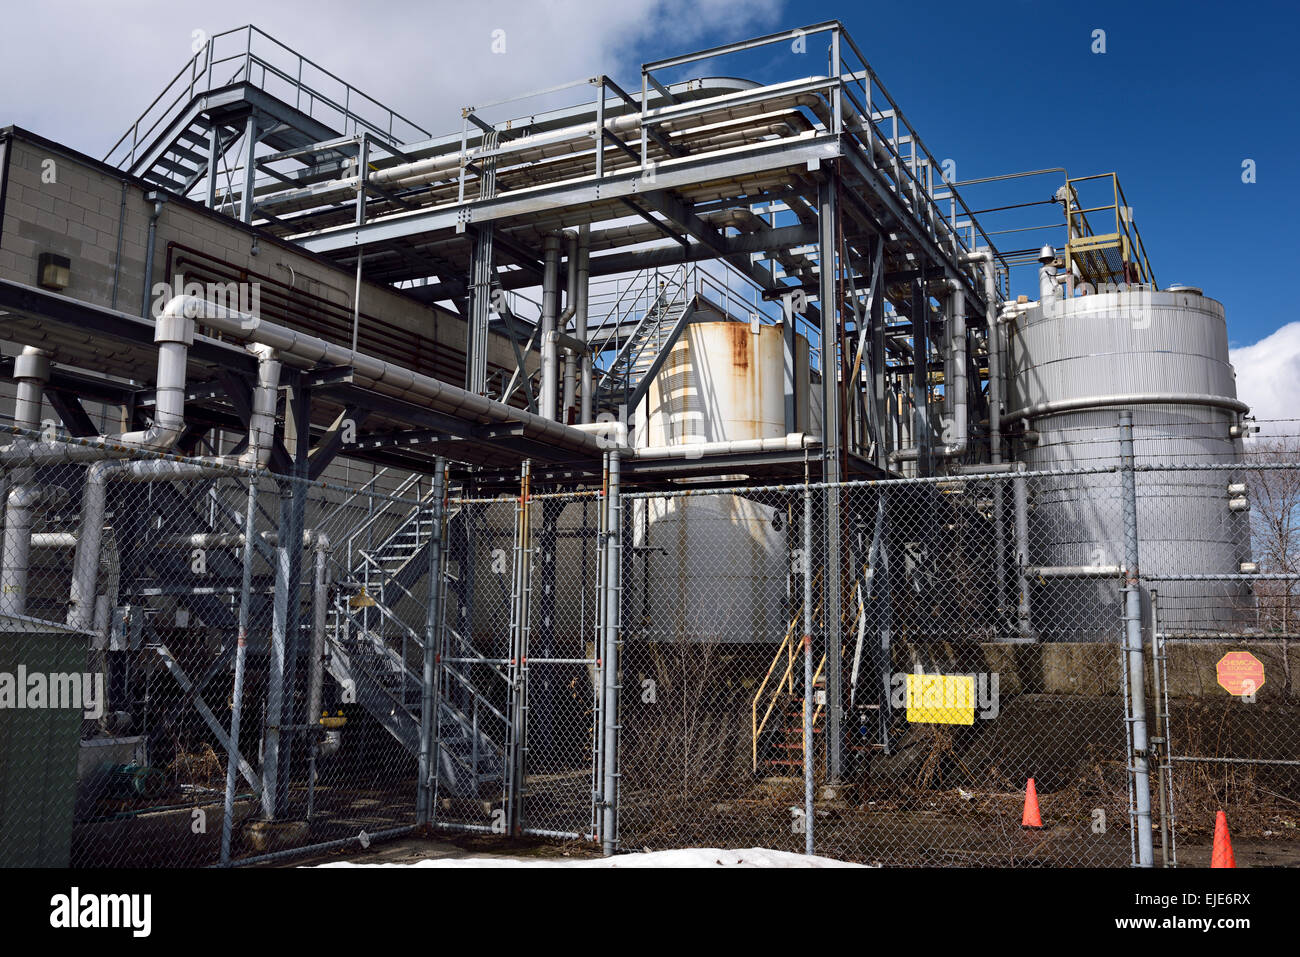 Storage area with metal tanks and pipes at a chemical plant Toronto - Stock Image